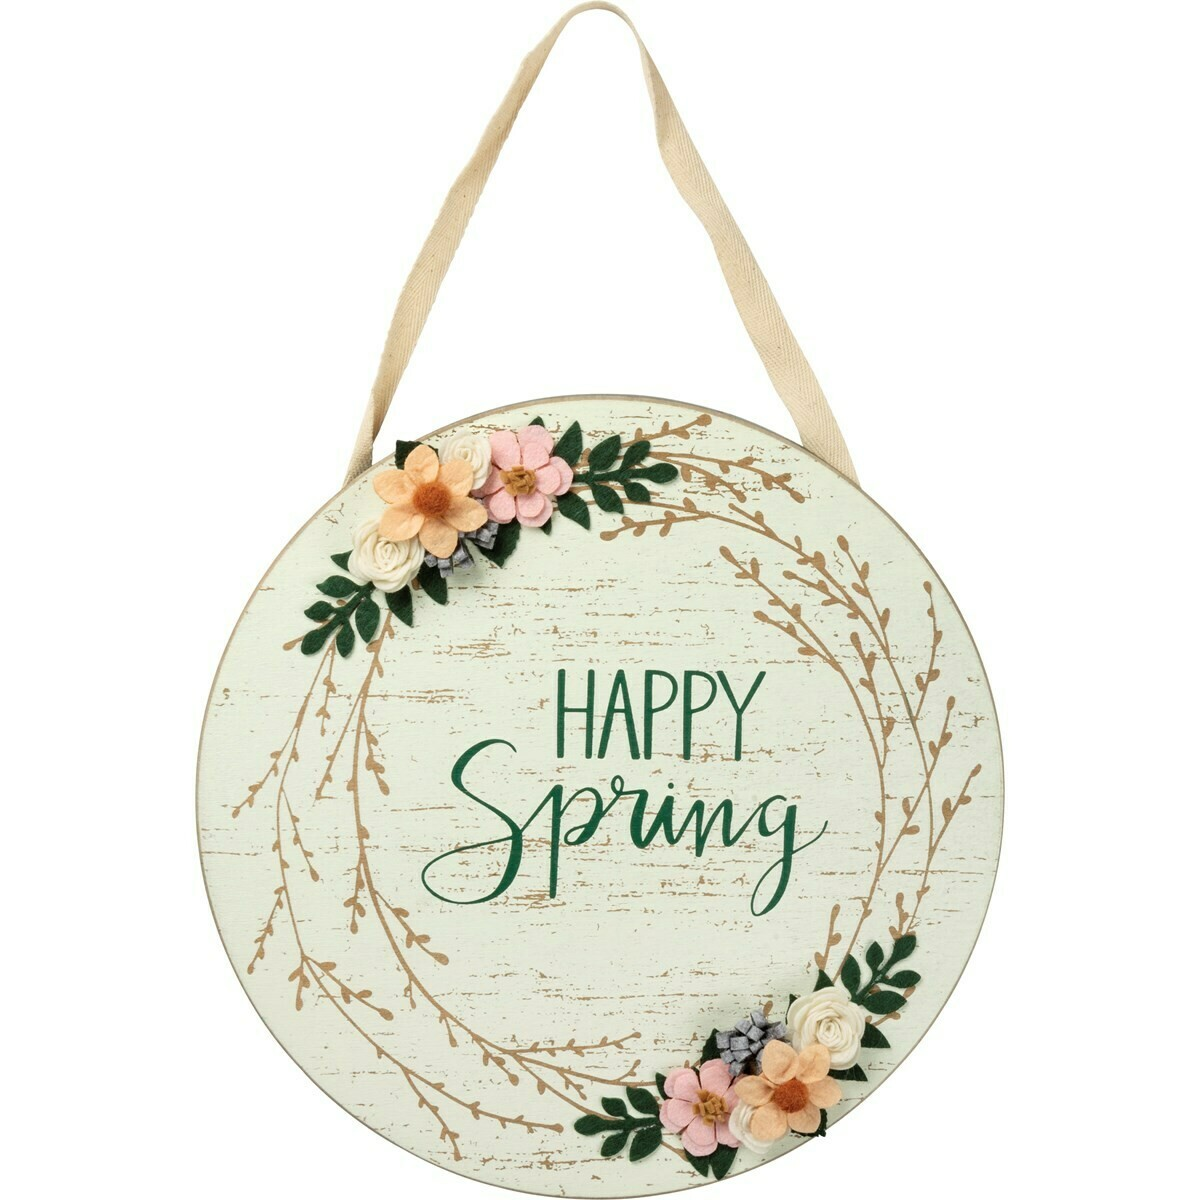 Happy Spring Wall Hanging